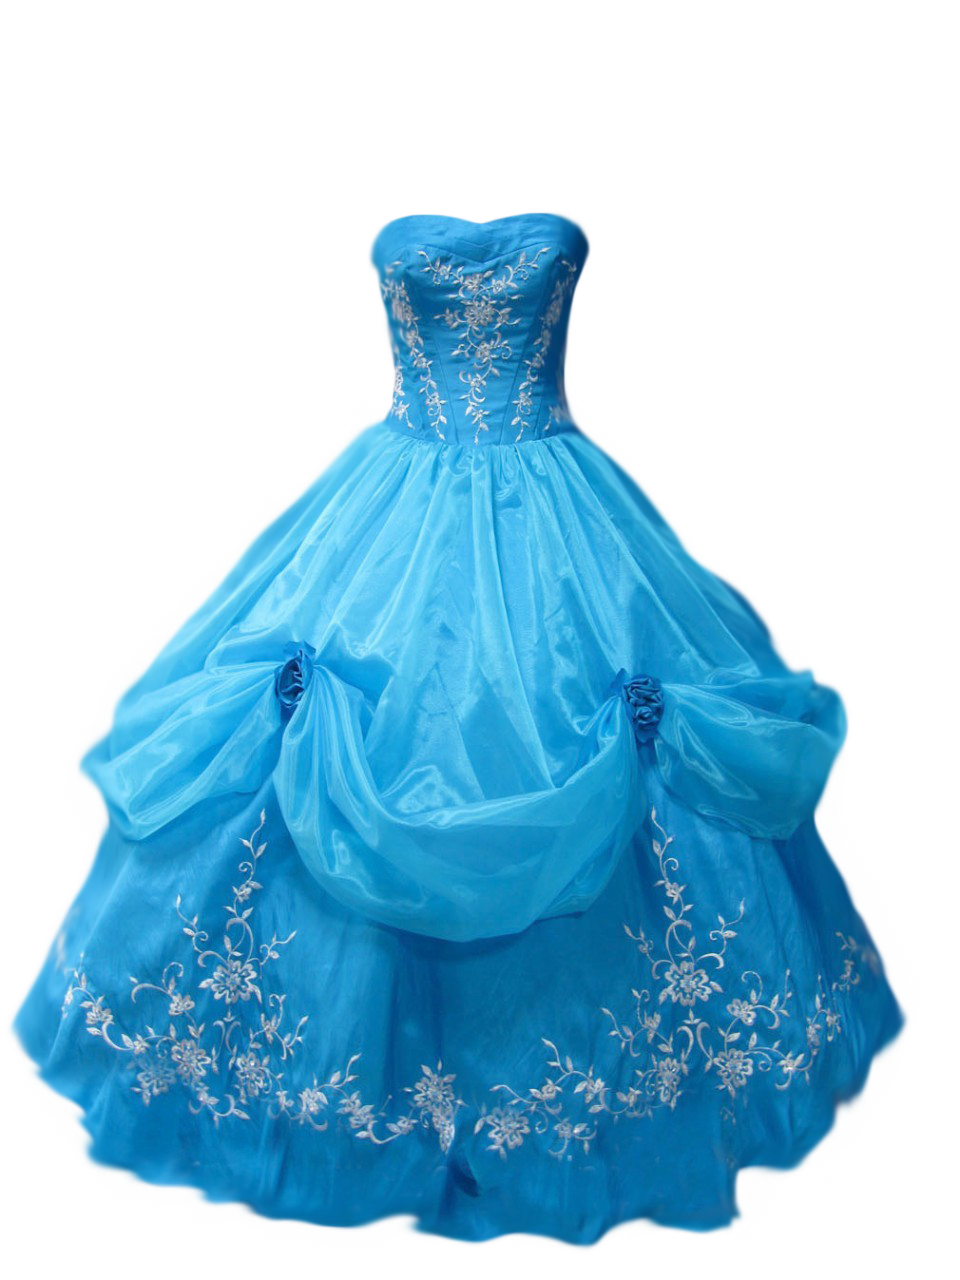 Flower girl dress clipart image freeuse stock Gown-26 png by AvalonsInspirational on DeviantArt image freeuse stock